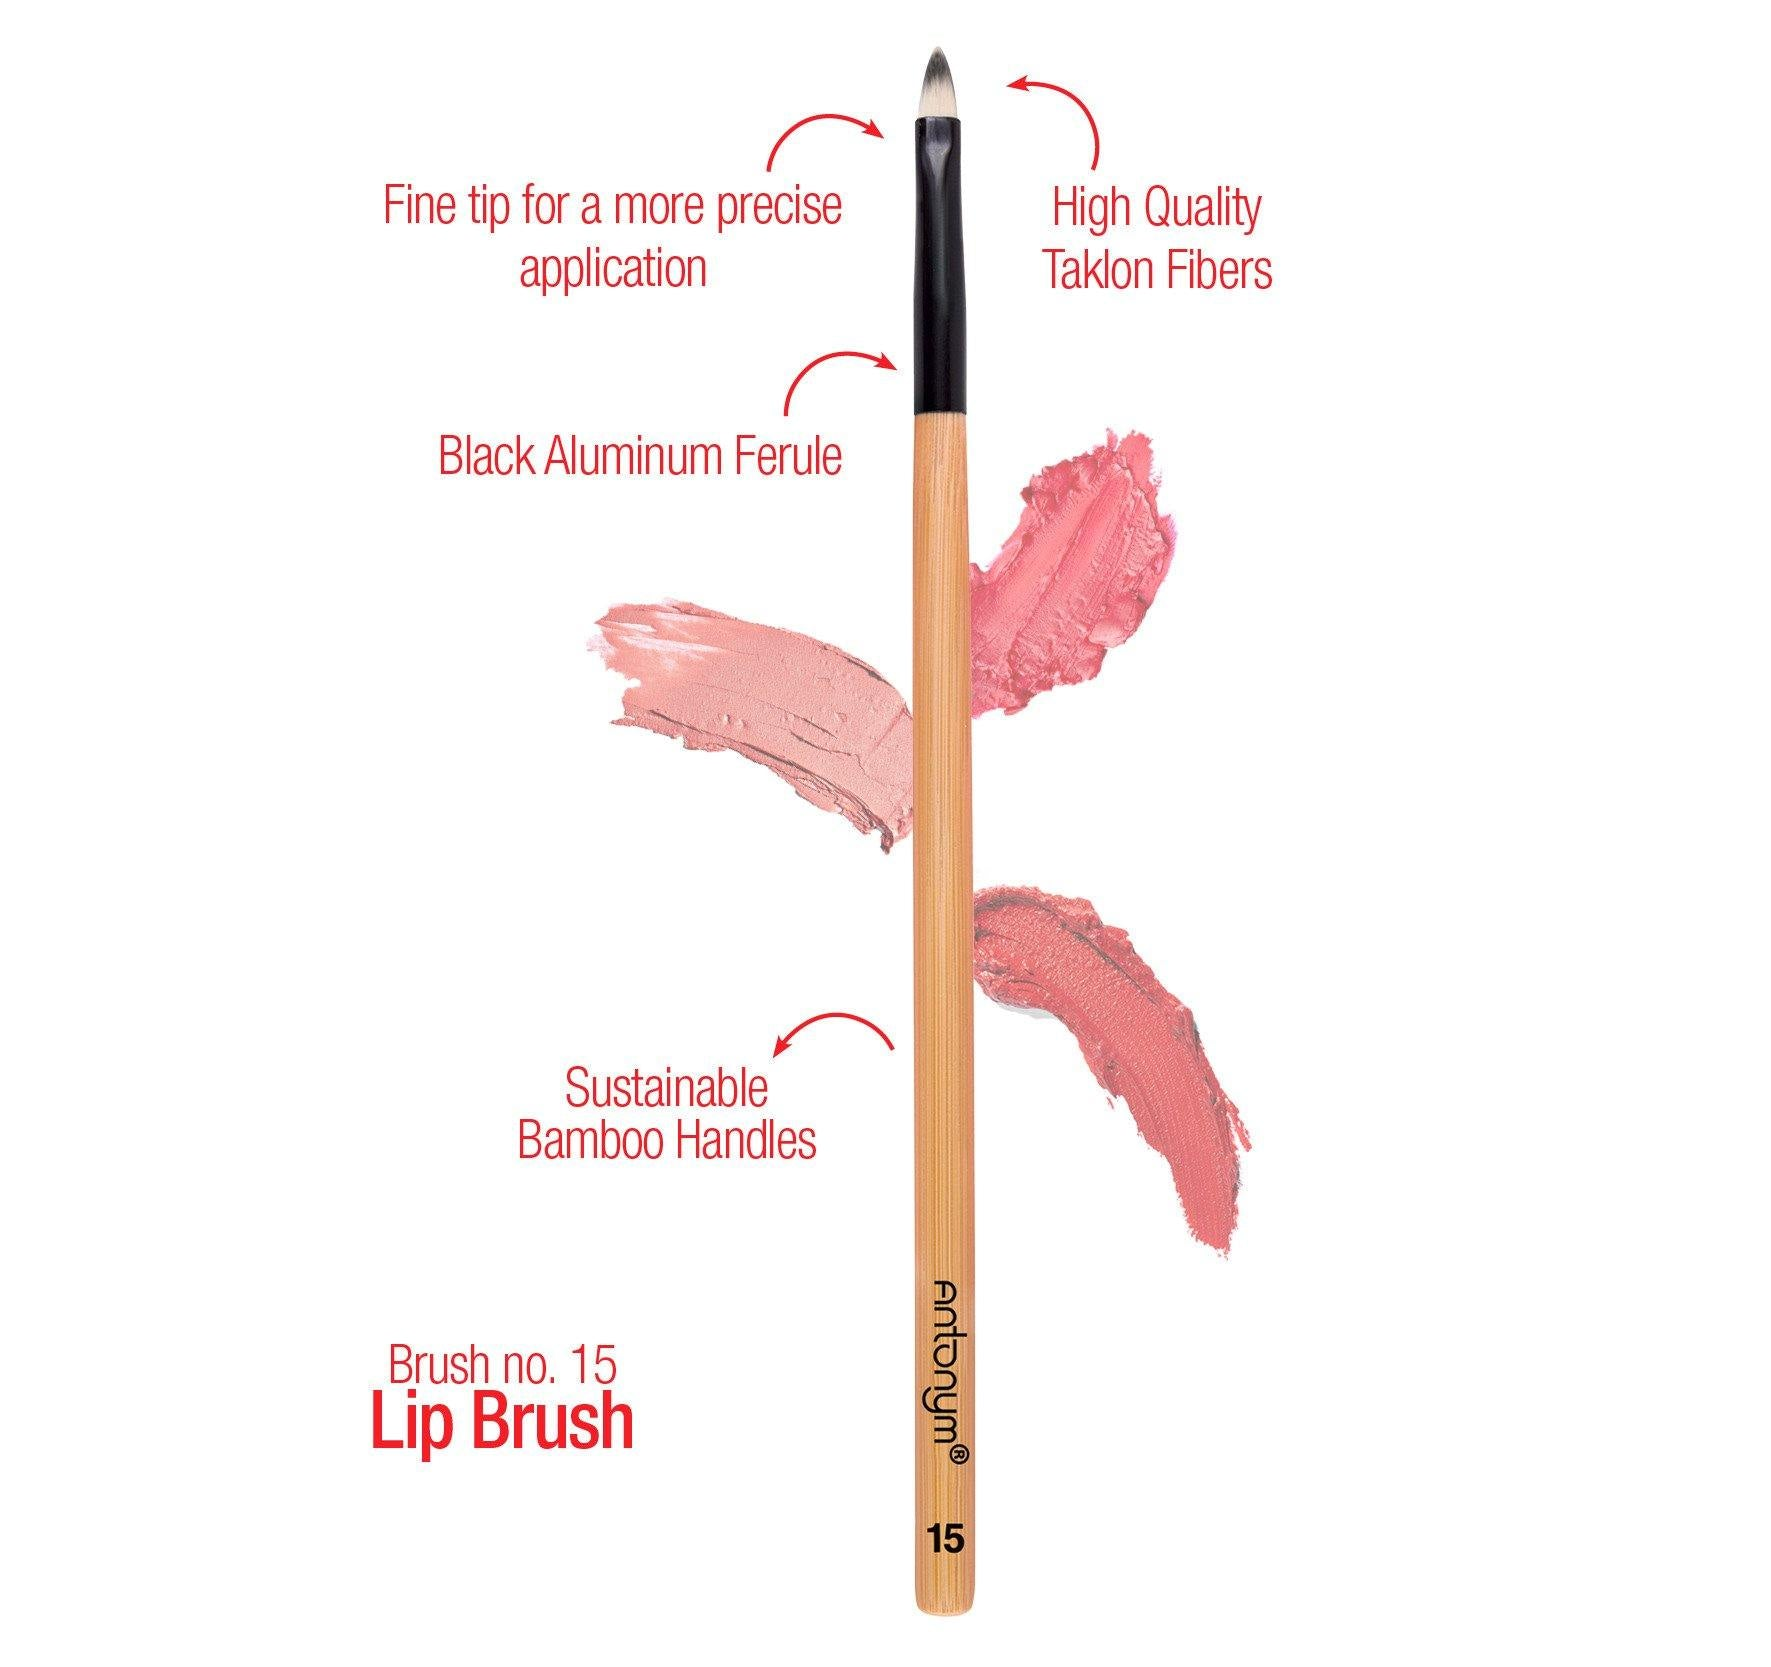 Lip Brush #15 - Antonym Cosmetics